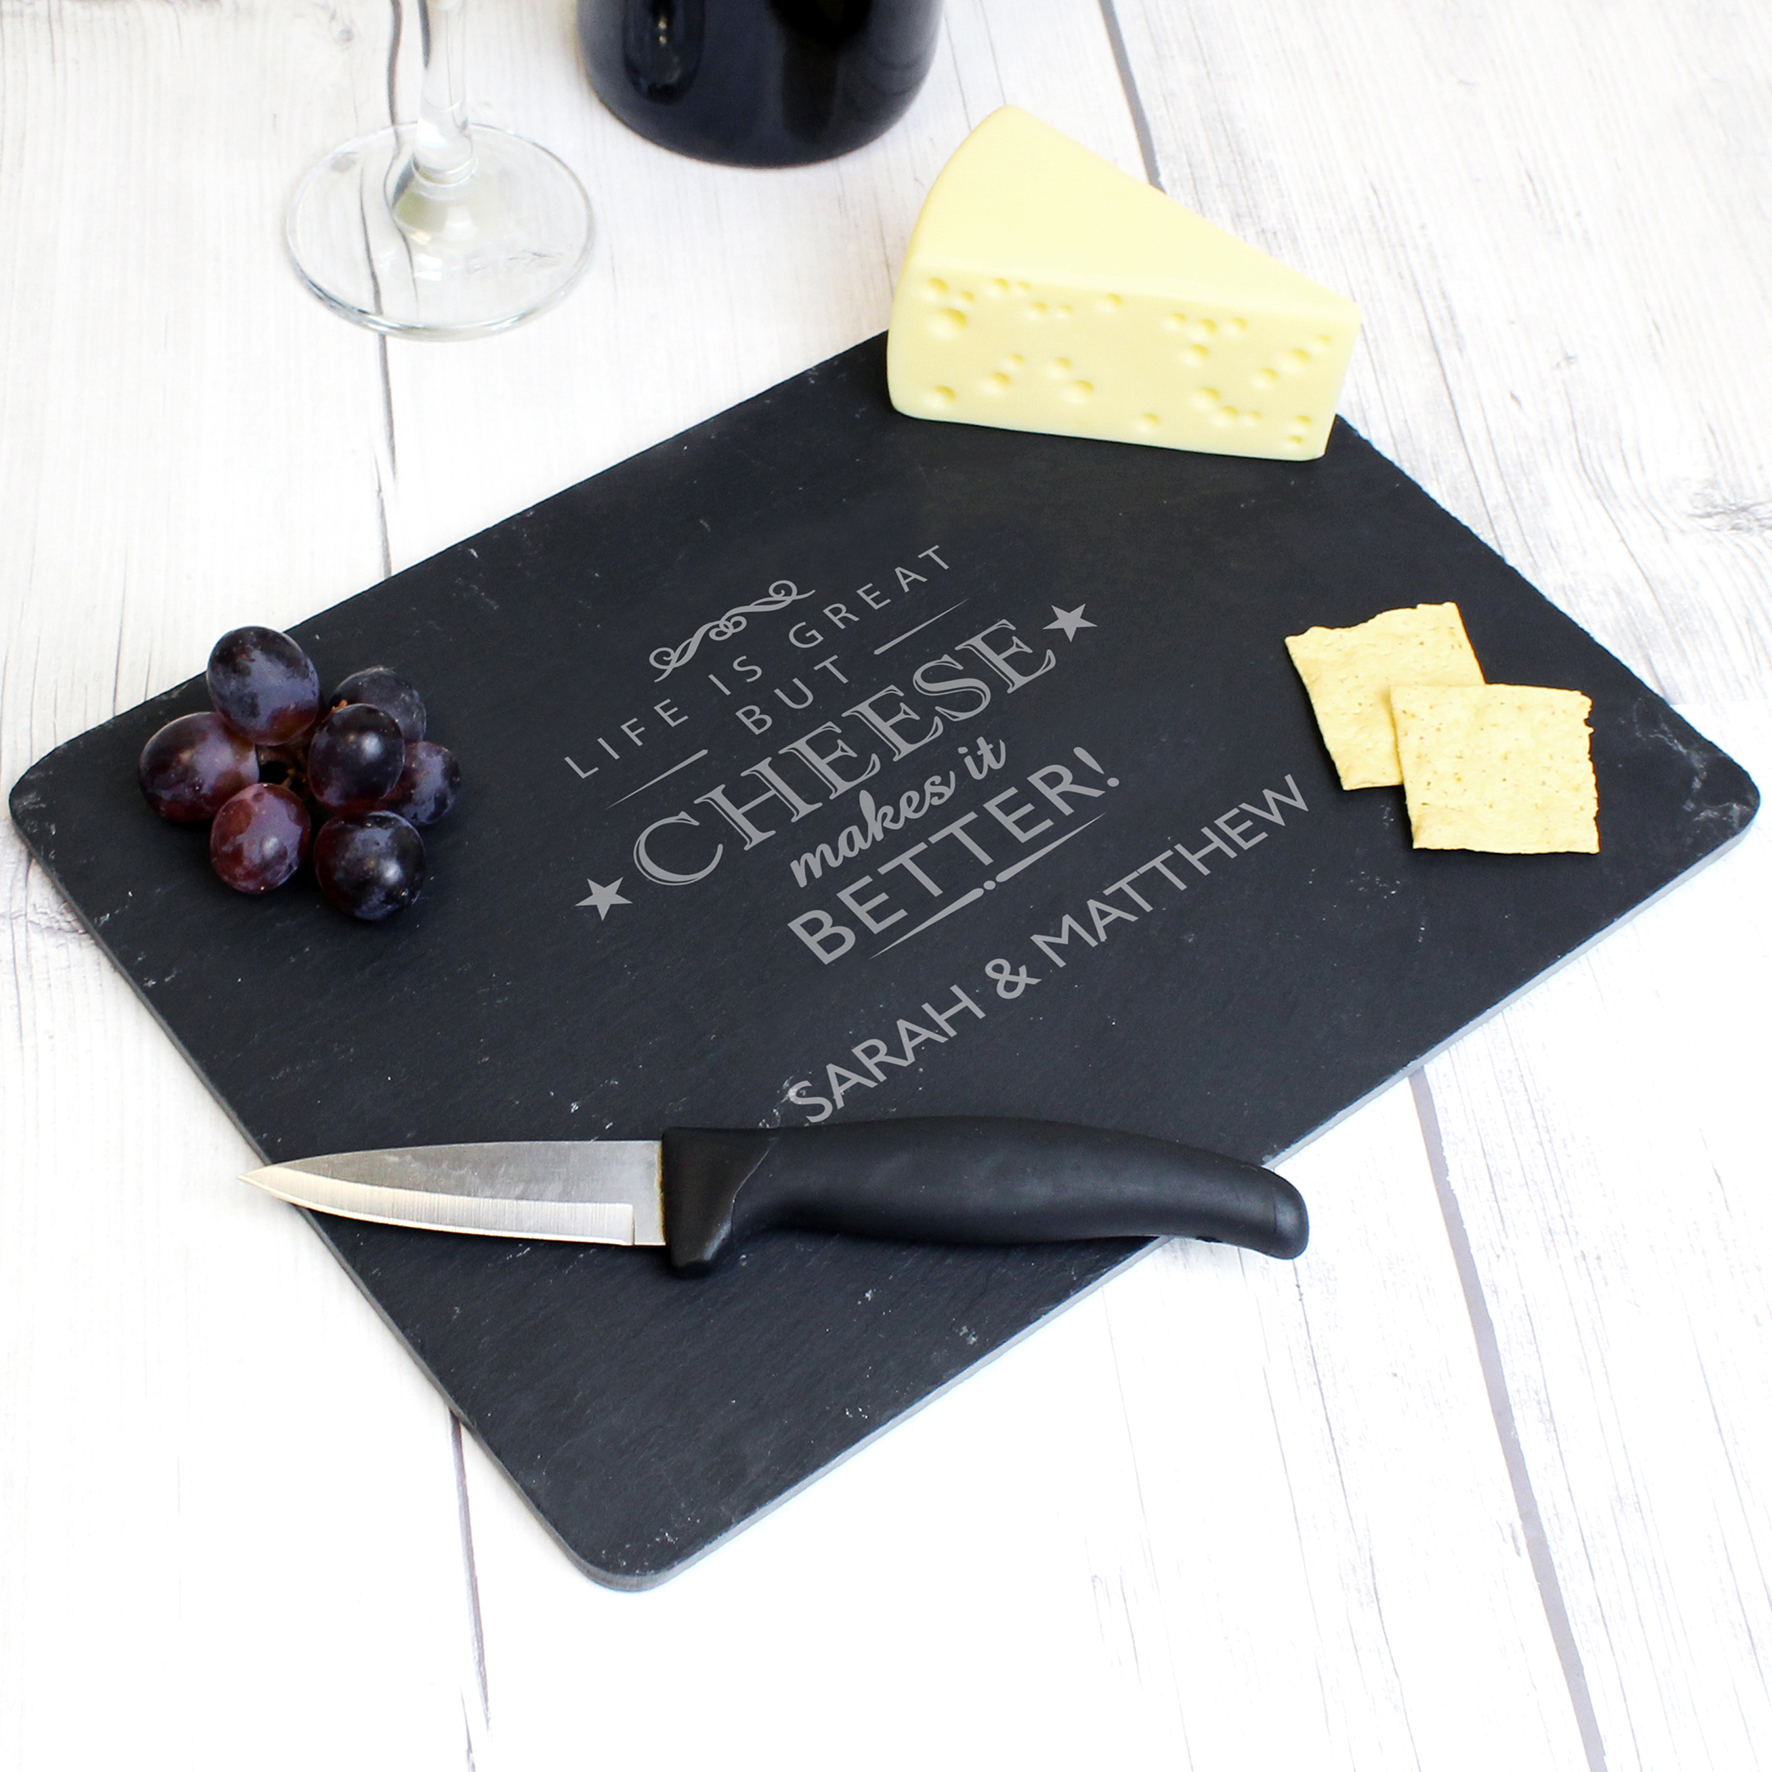 Engraved Cheese Makes Life Better... Slate Cheeseboard